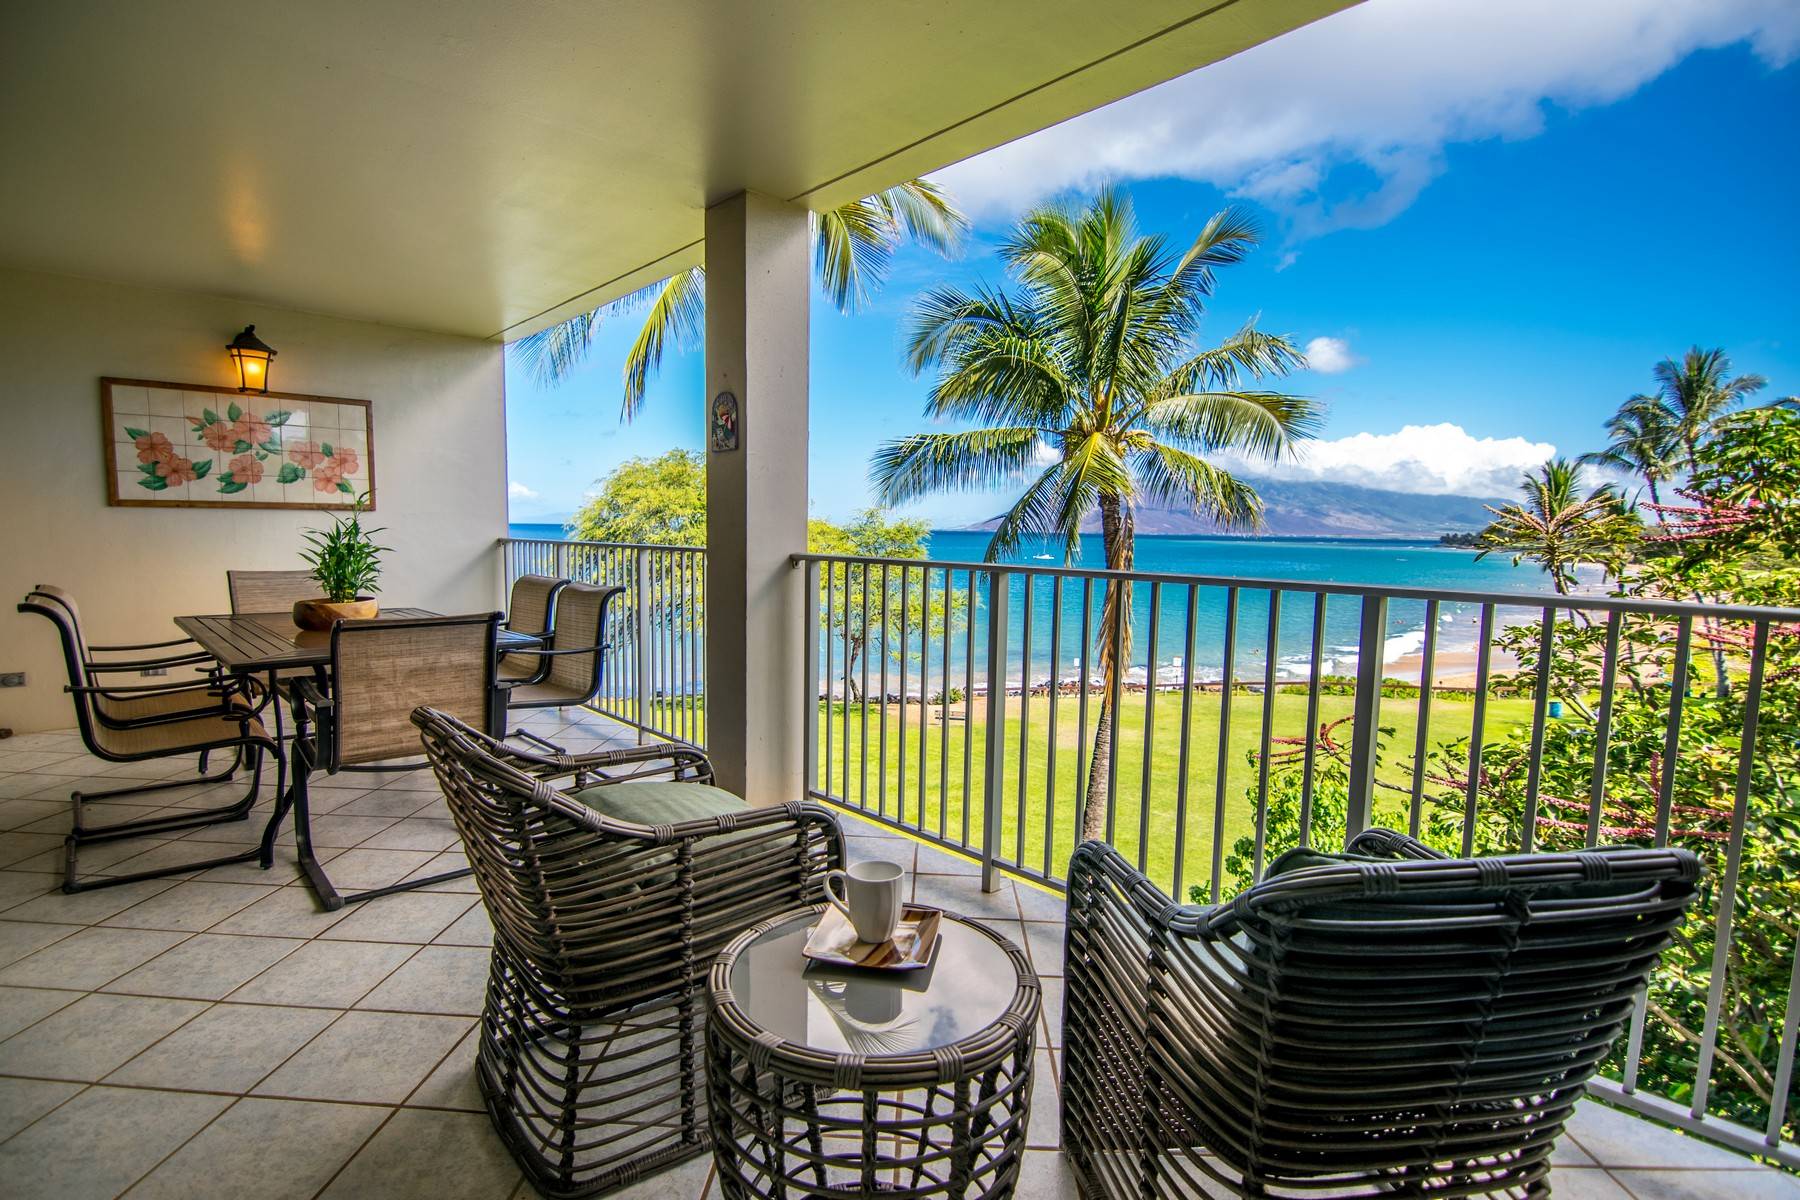 Condominio por un Venta en Royal Mauian-Direct Oceanfront Condo With Room For The Whole Family 2430 S Kihei Road, Royal Mauian 402 Kihei, Hawaii, 96753 Estados Unidos